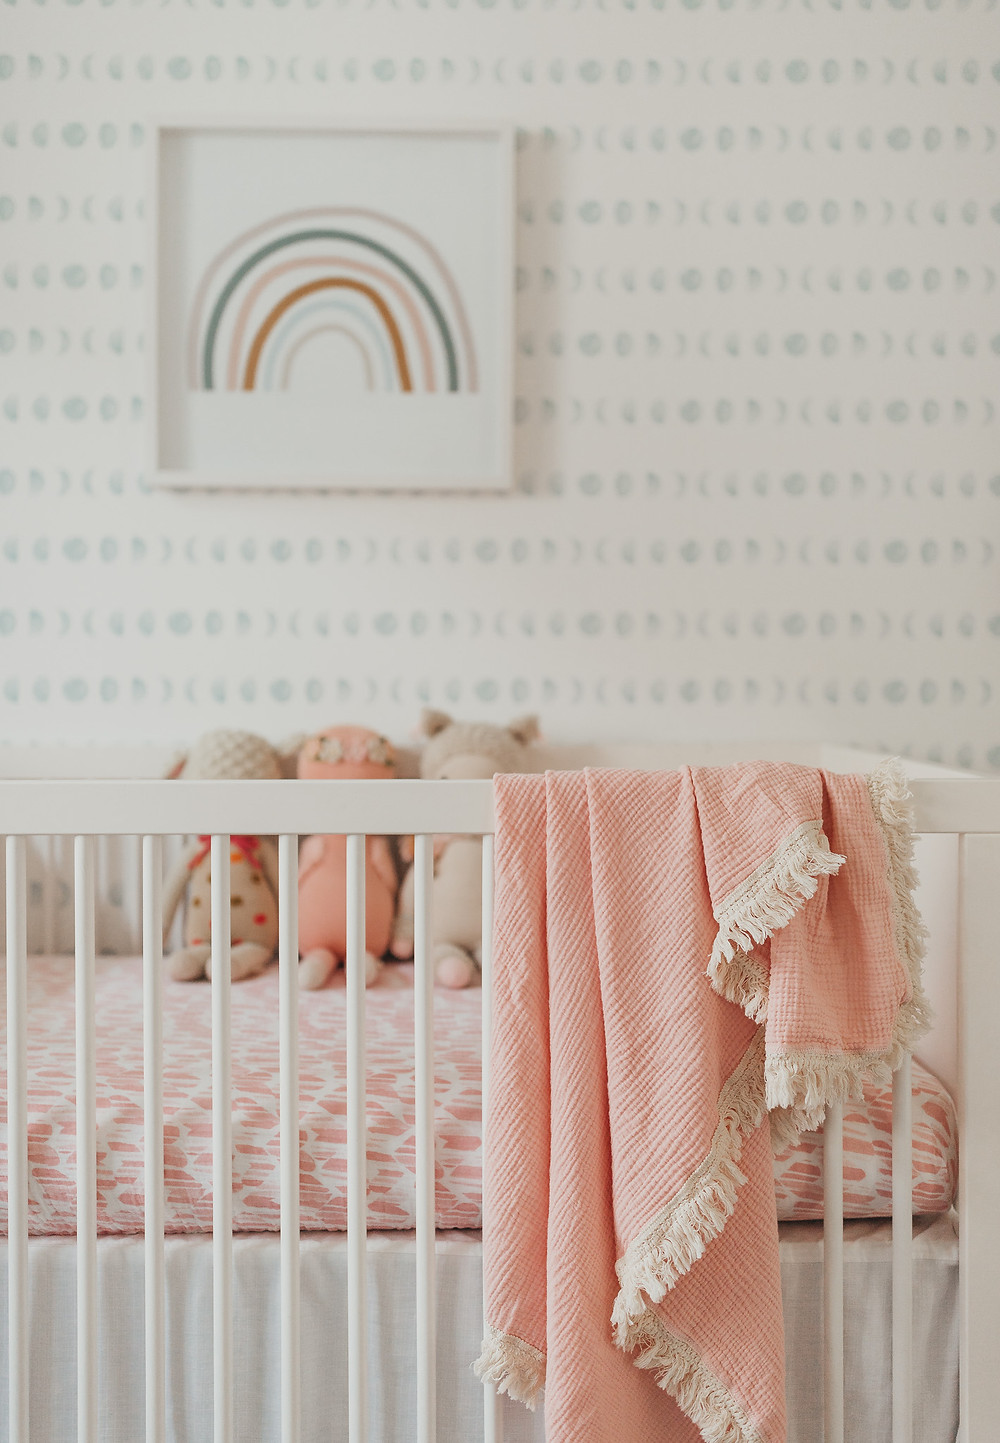 A peachy blanket hanging over the edge of a crib.